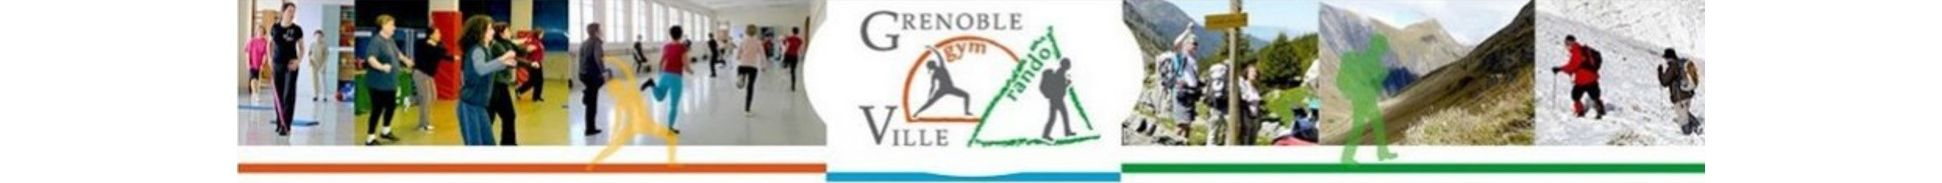 Grenoble Ville Gym Rando